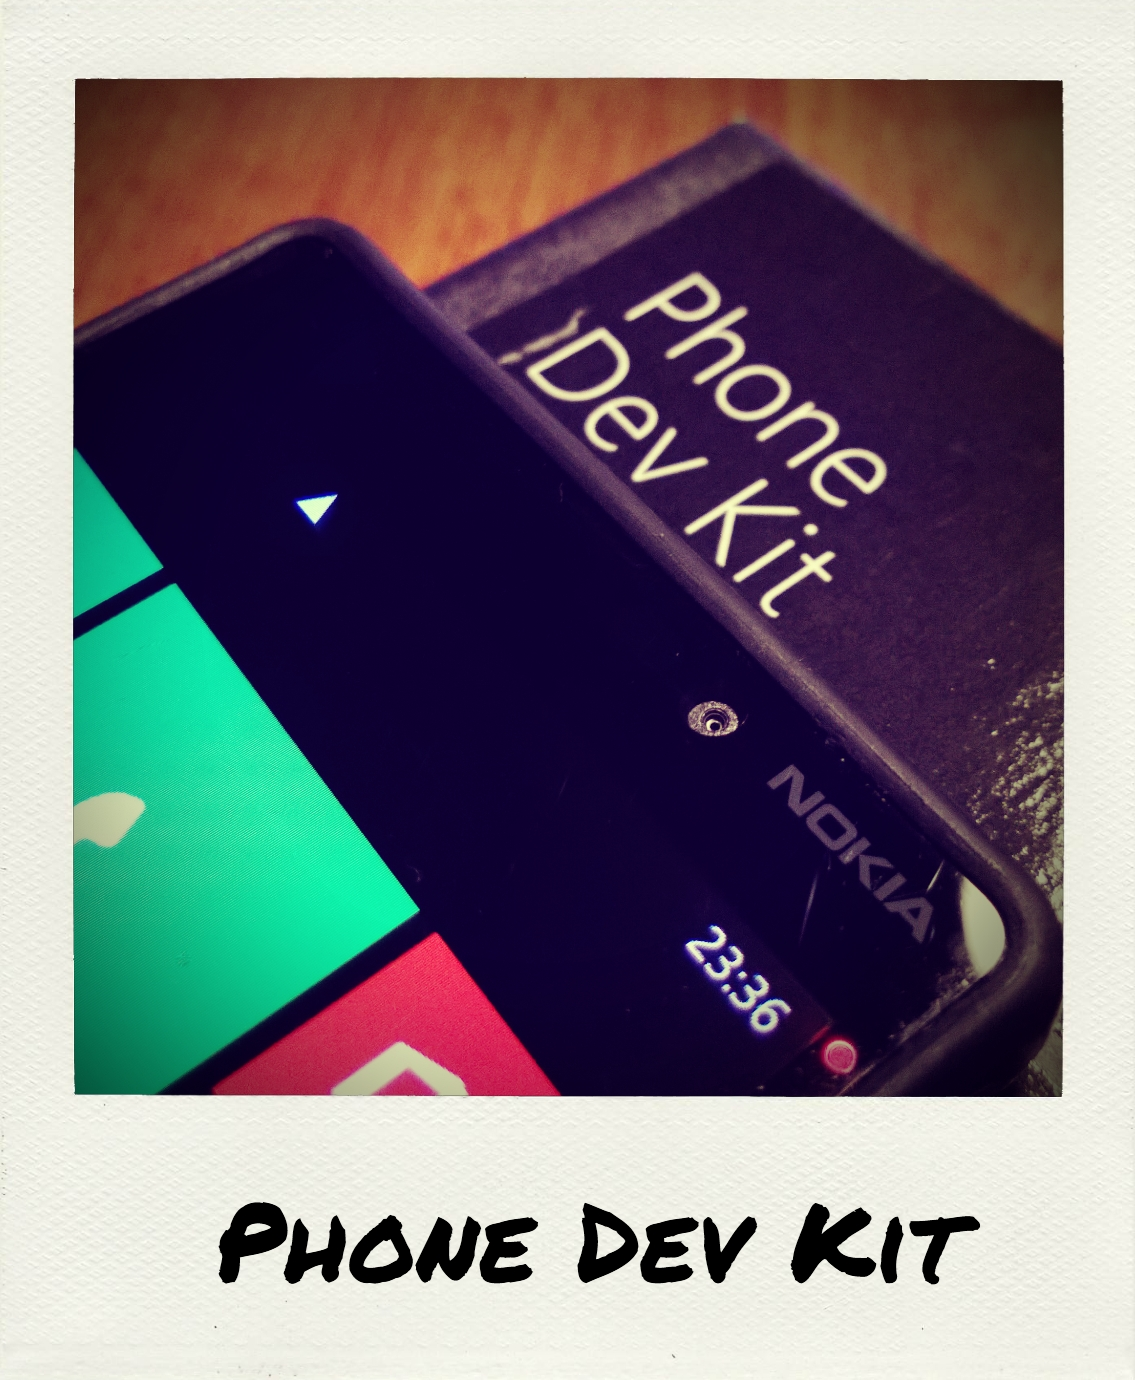 Lumia Phone Dev Kit